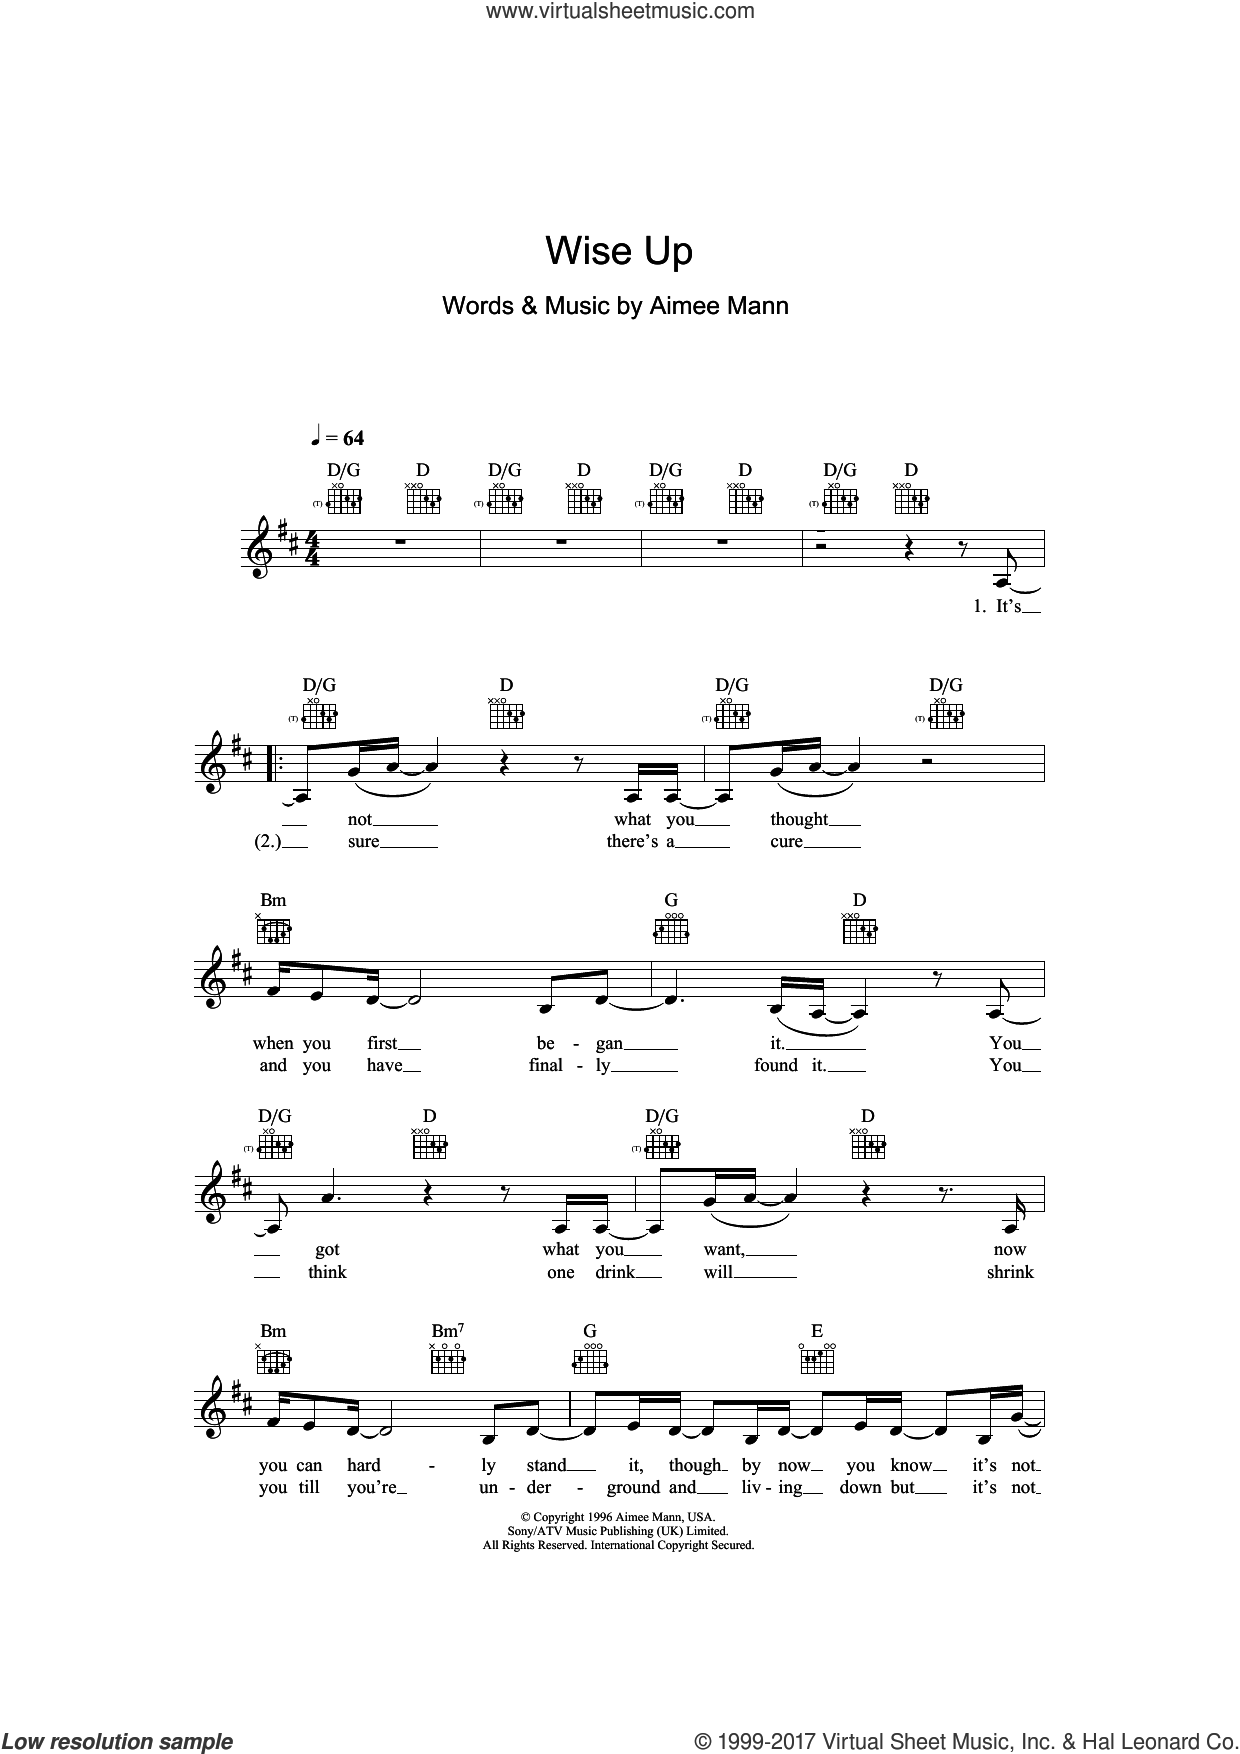 Wise Up (from Magnolia) sheet music for voice and other instruments (fake book) by Aimee Mann, intermediate skill level